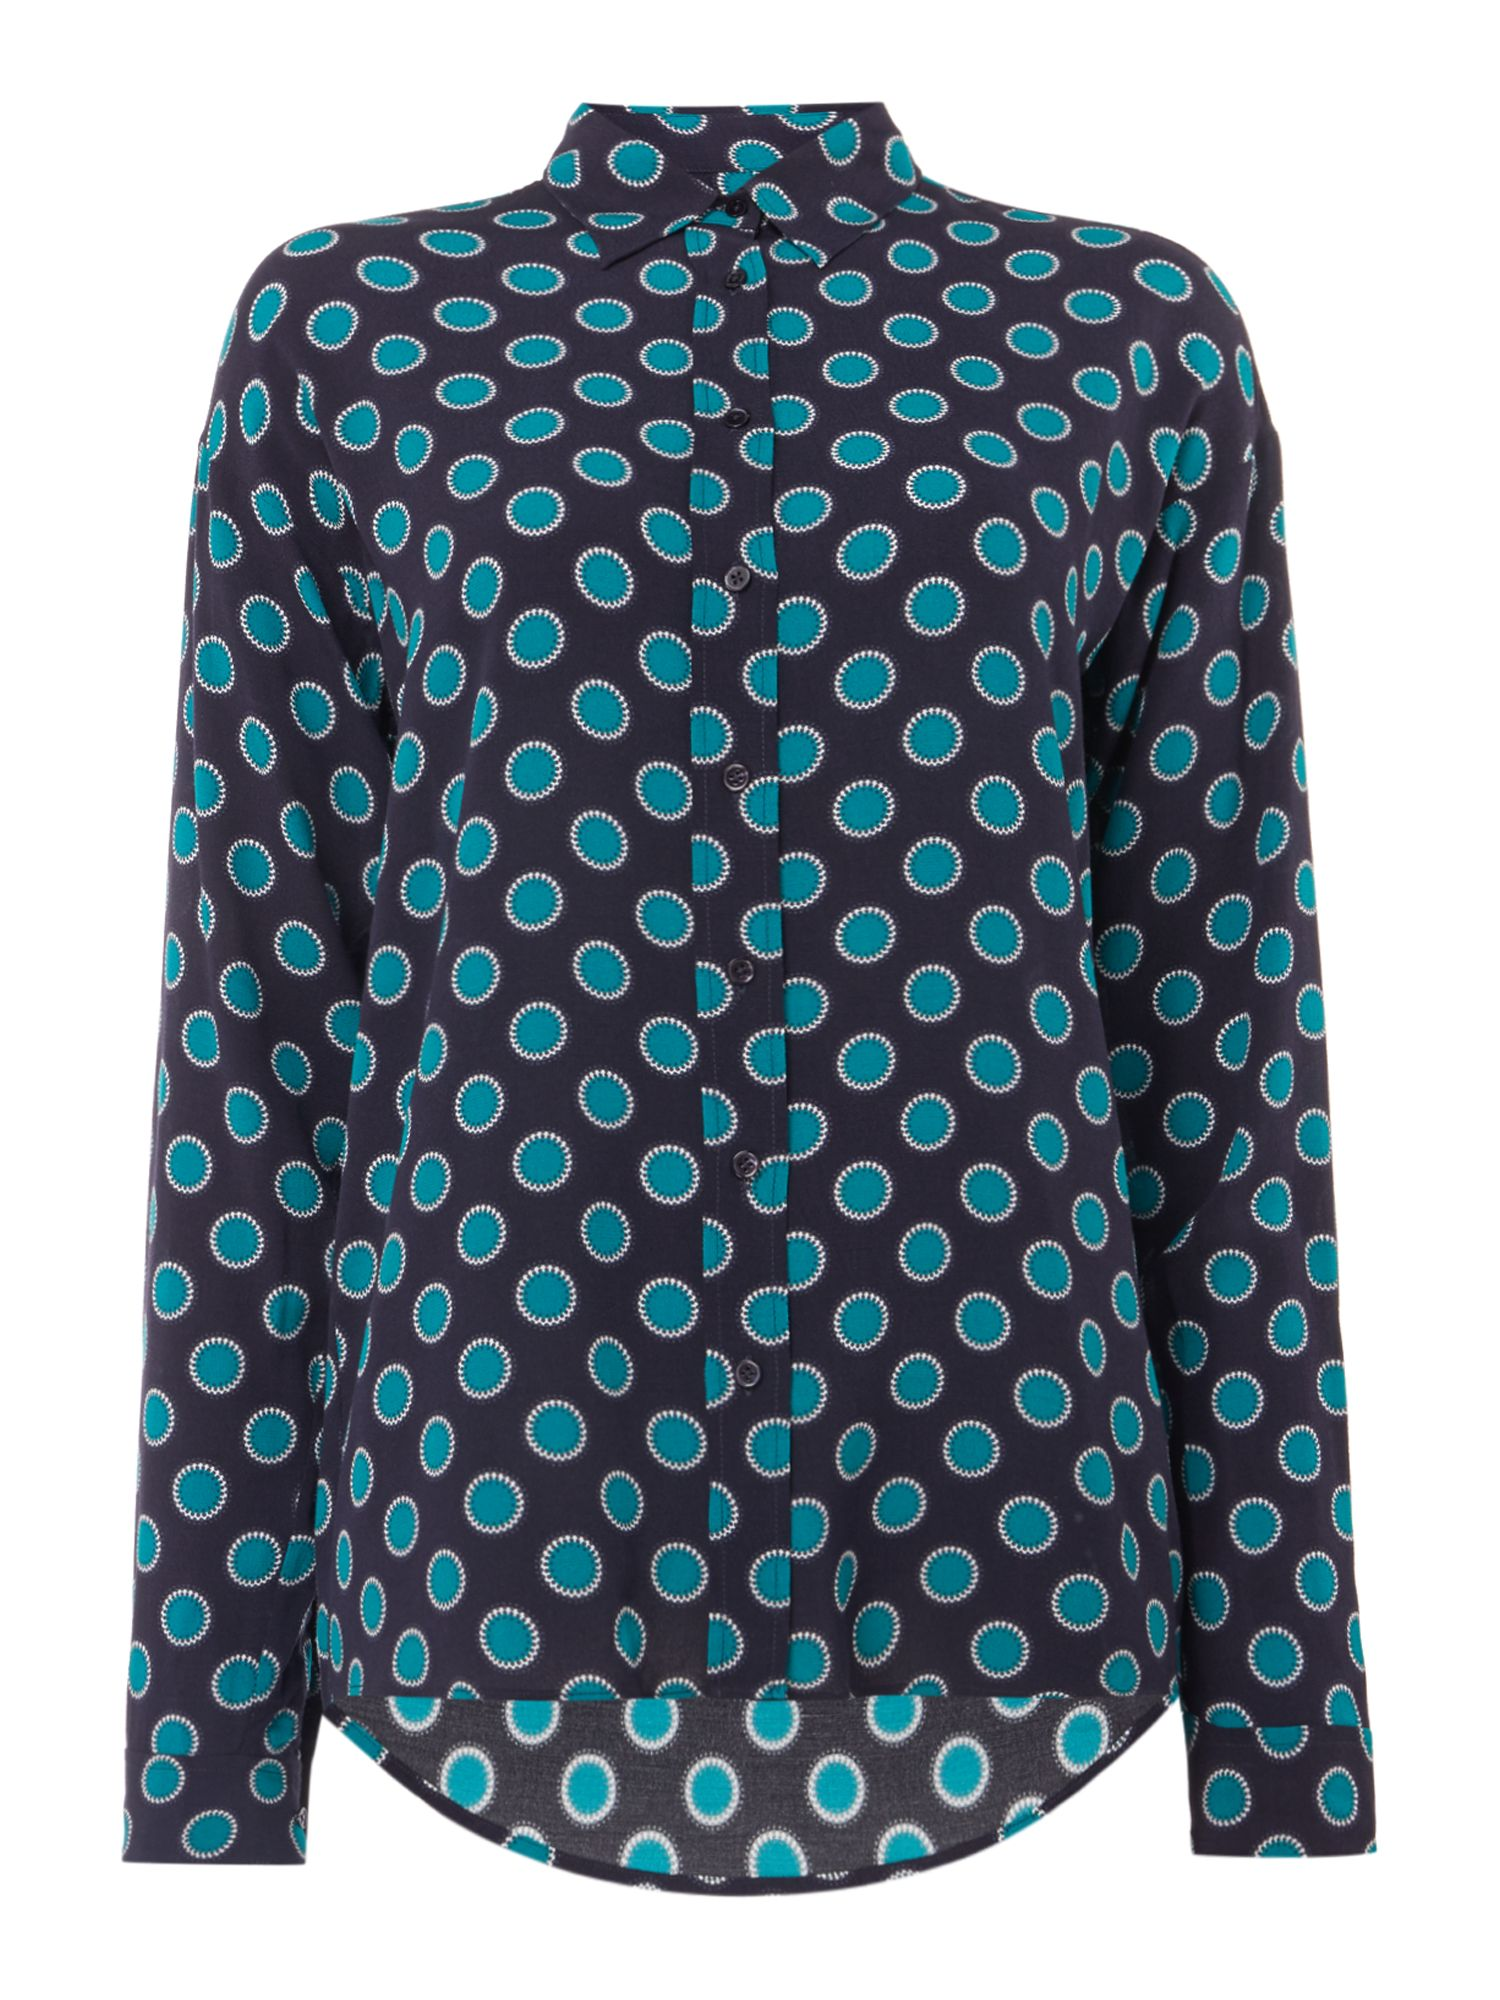 GANT Relaxed Fit Shirt In Large Misty Dot Print Shirt, Blue